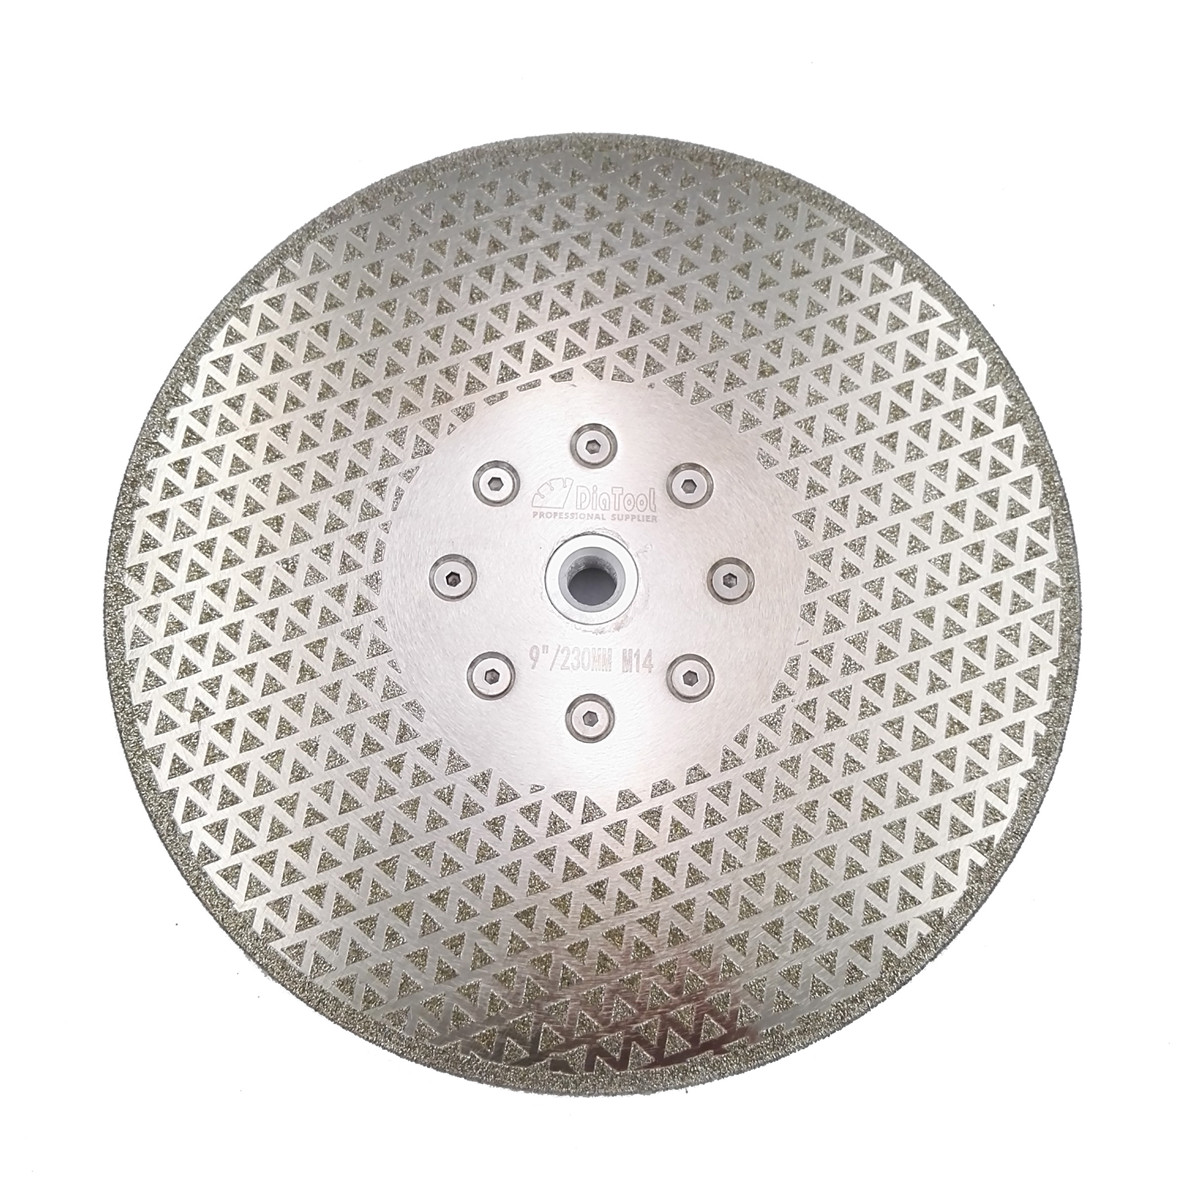 DIATOOL 1pc 230mm Electroplated Diamond Cutting & Grinding Blade Marble Diameter 9 Both Side Coated Diamond Disc цена